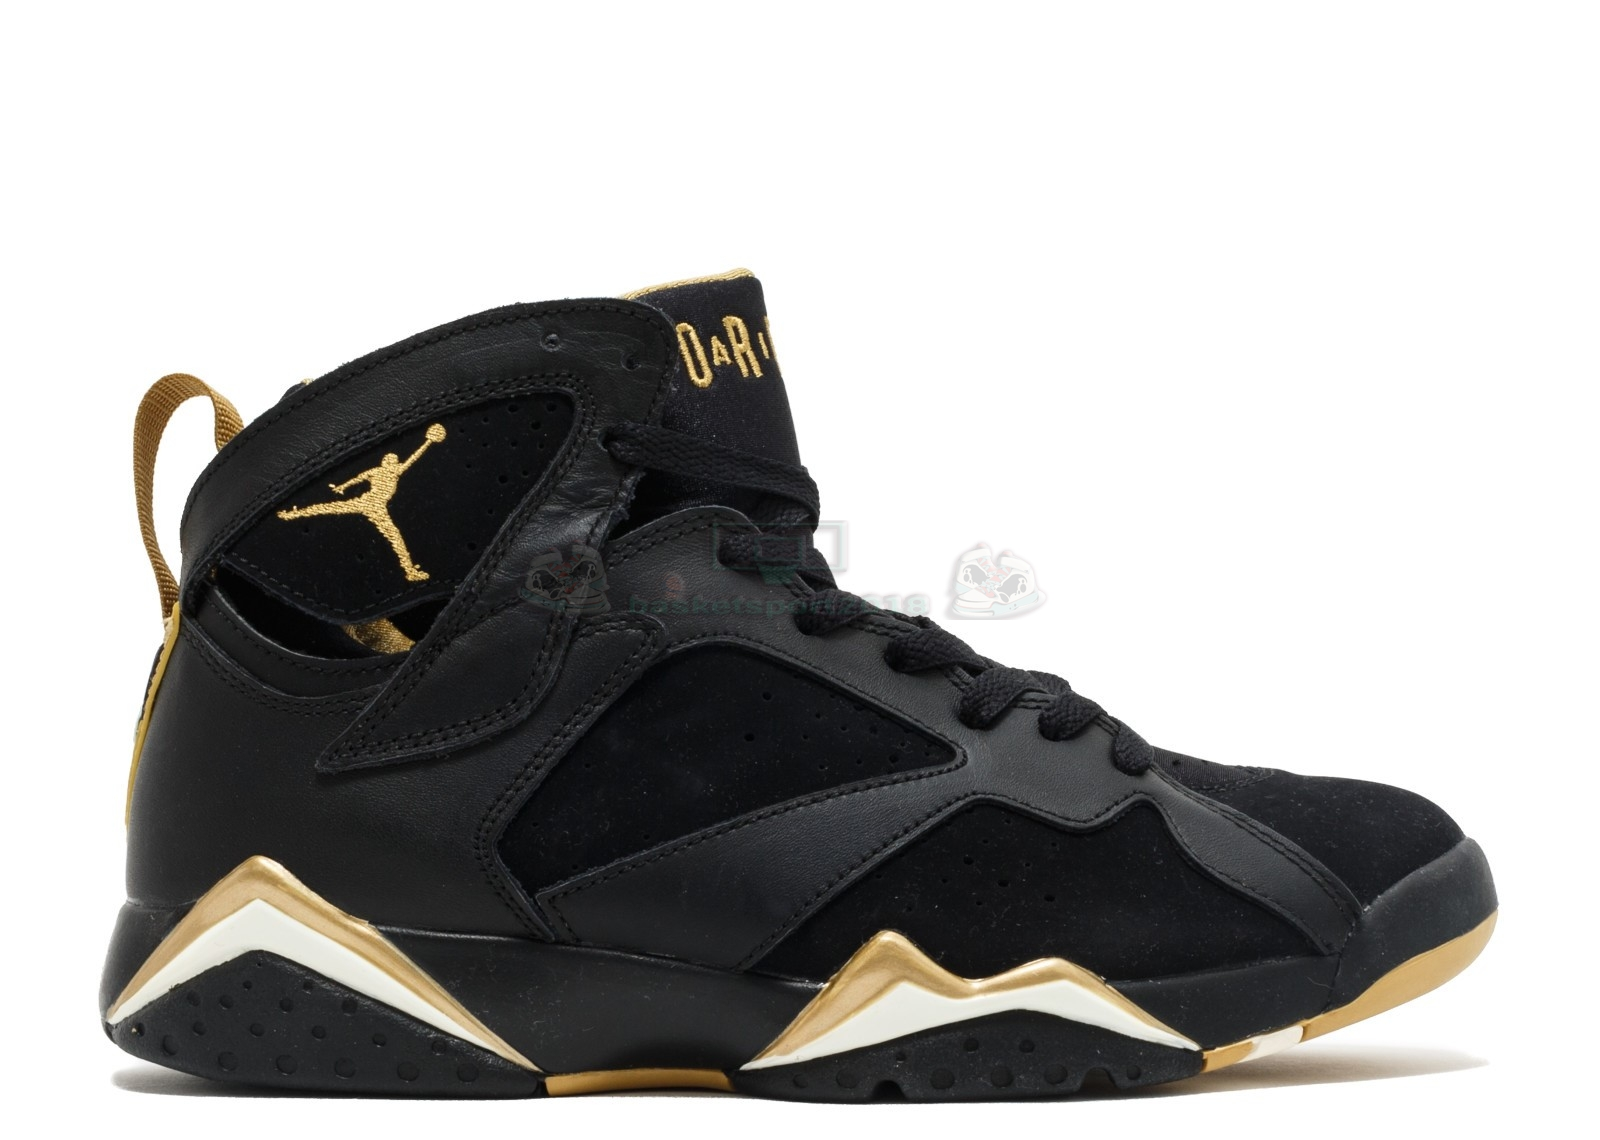 "Acheter Maintenant Pas Cher Homme - Air Jordan 7 Retro ""Golden Moments Package"" Noir Or (304775-030)"